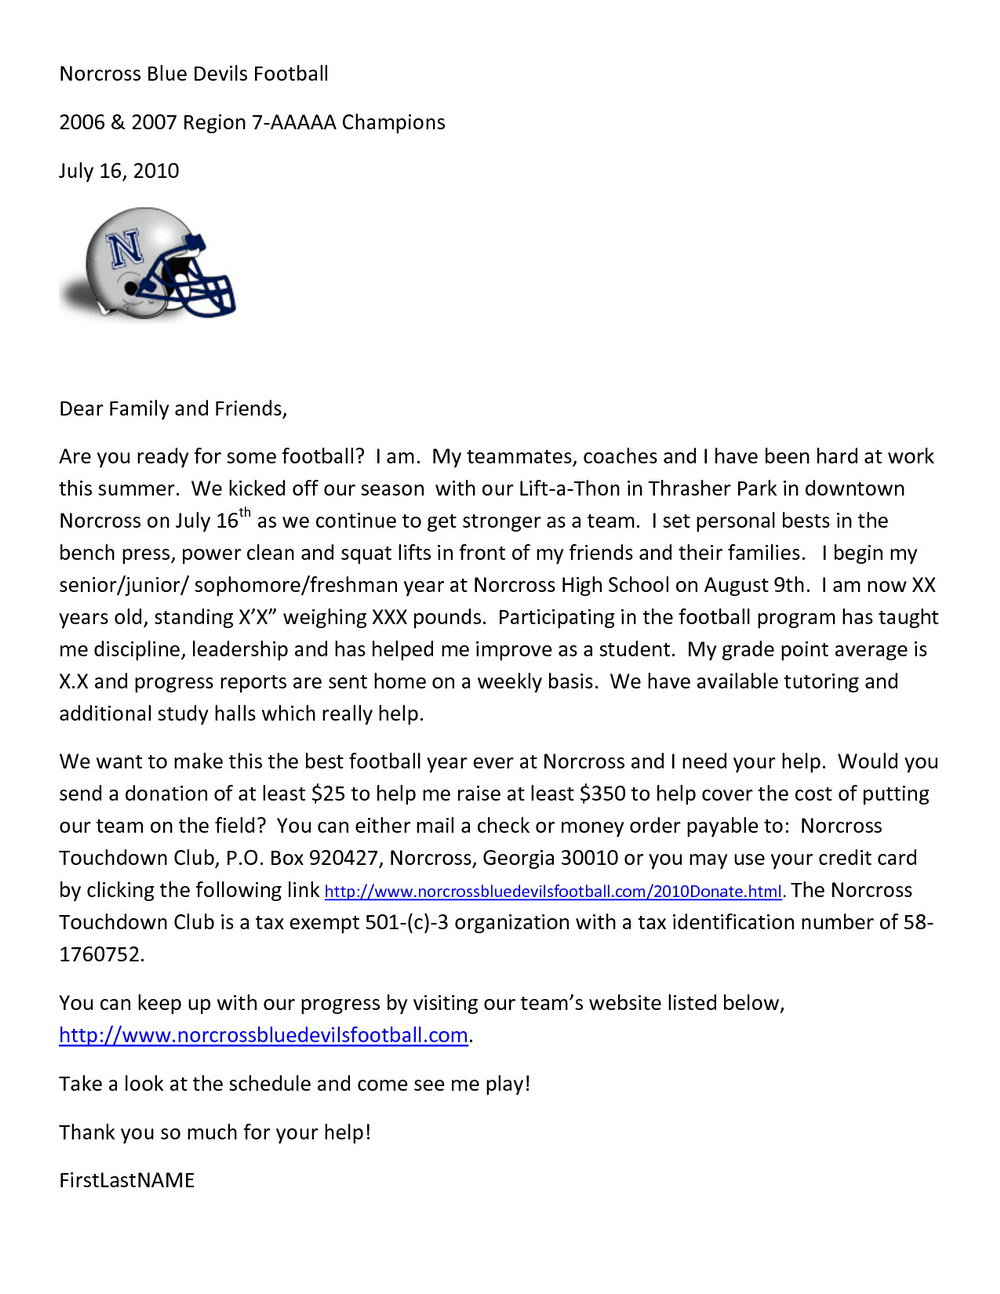 Donation Letter Template For Sports